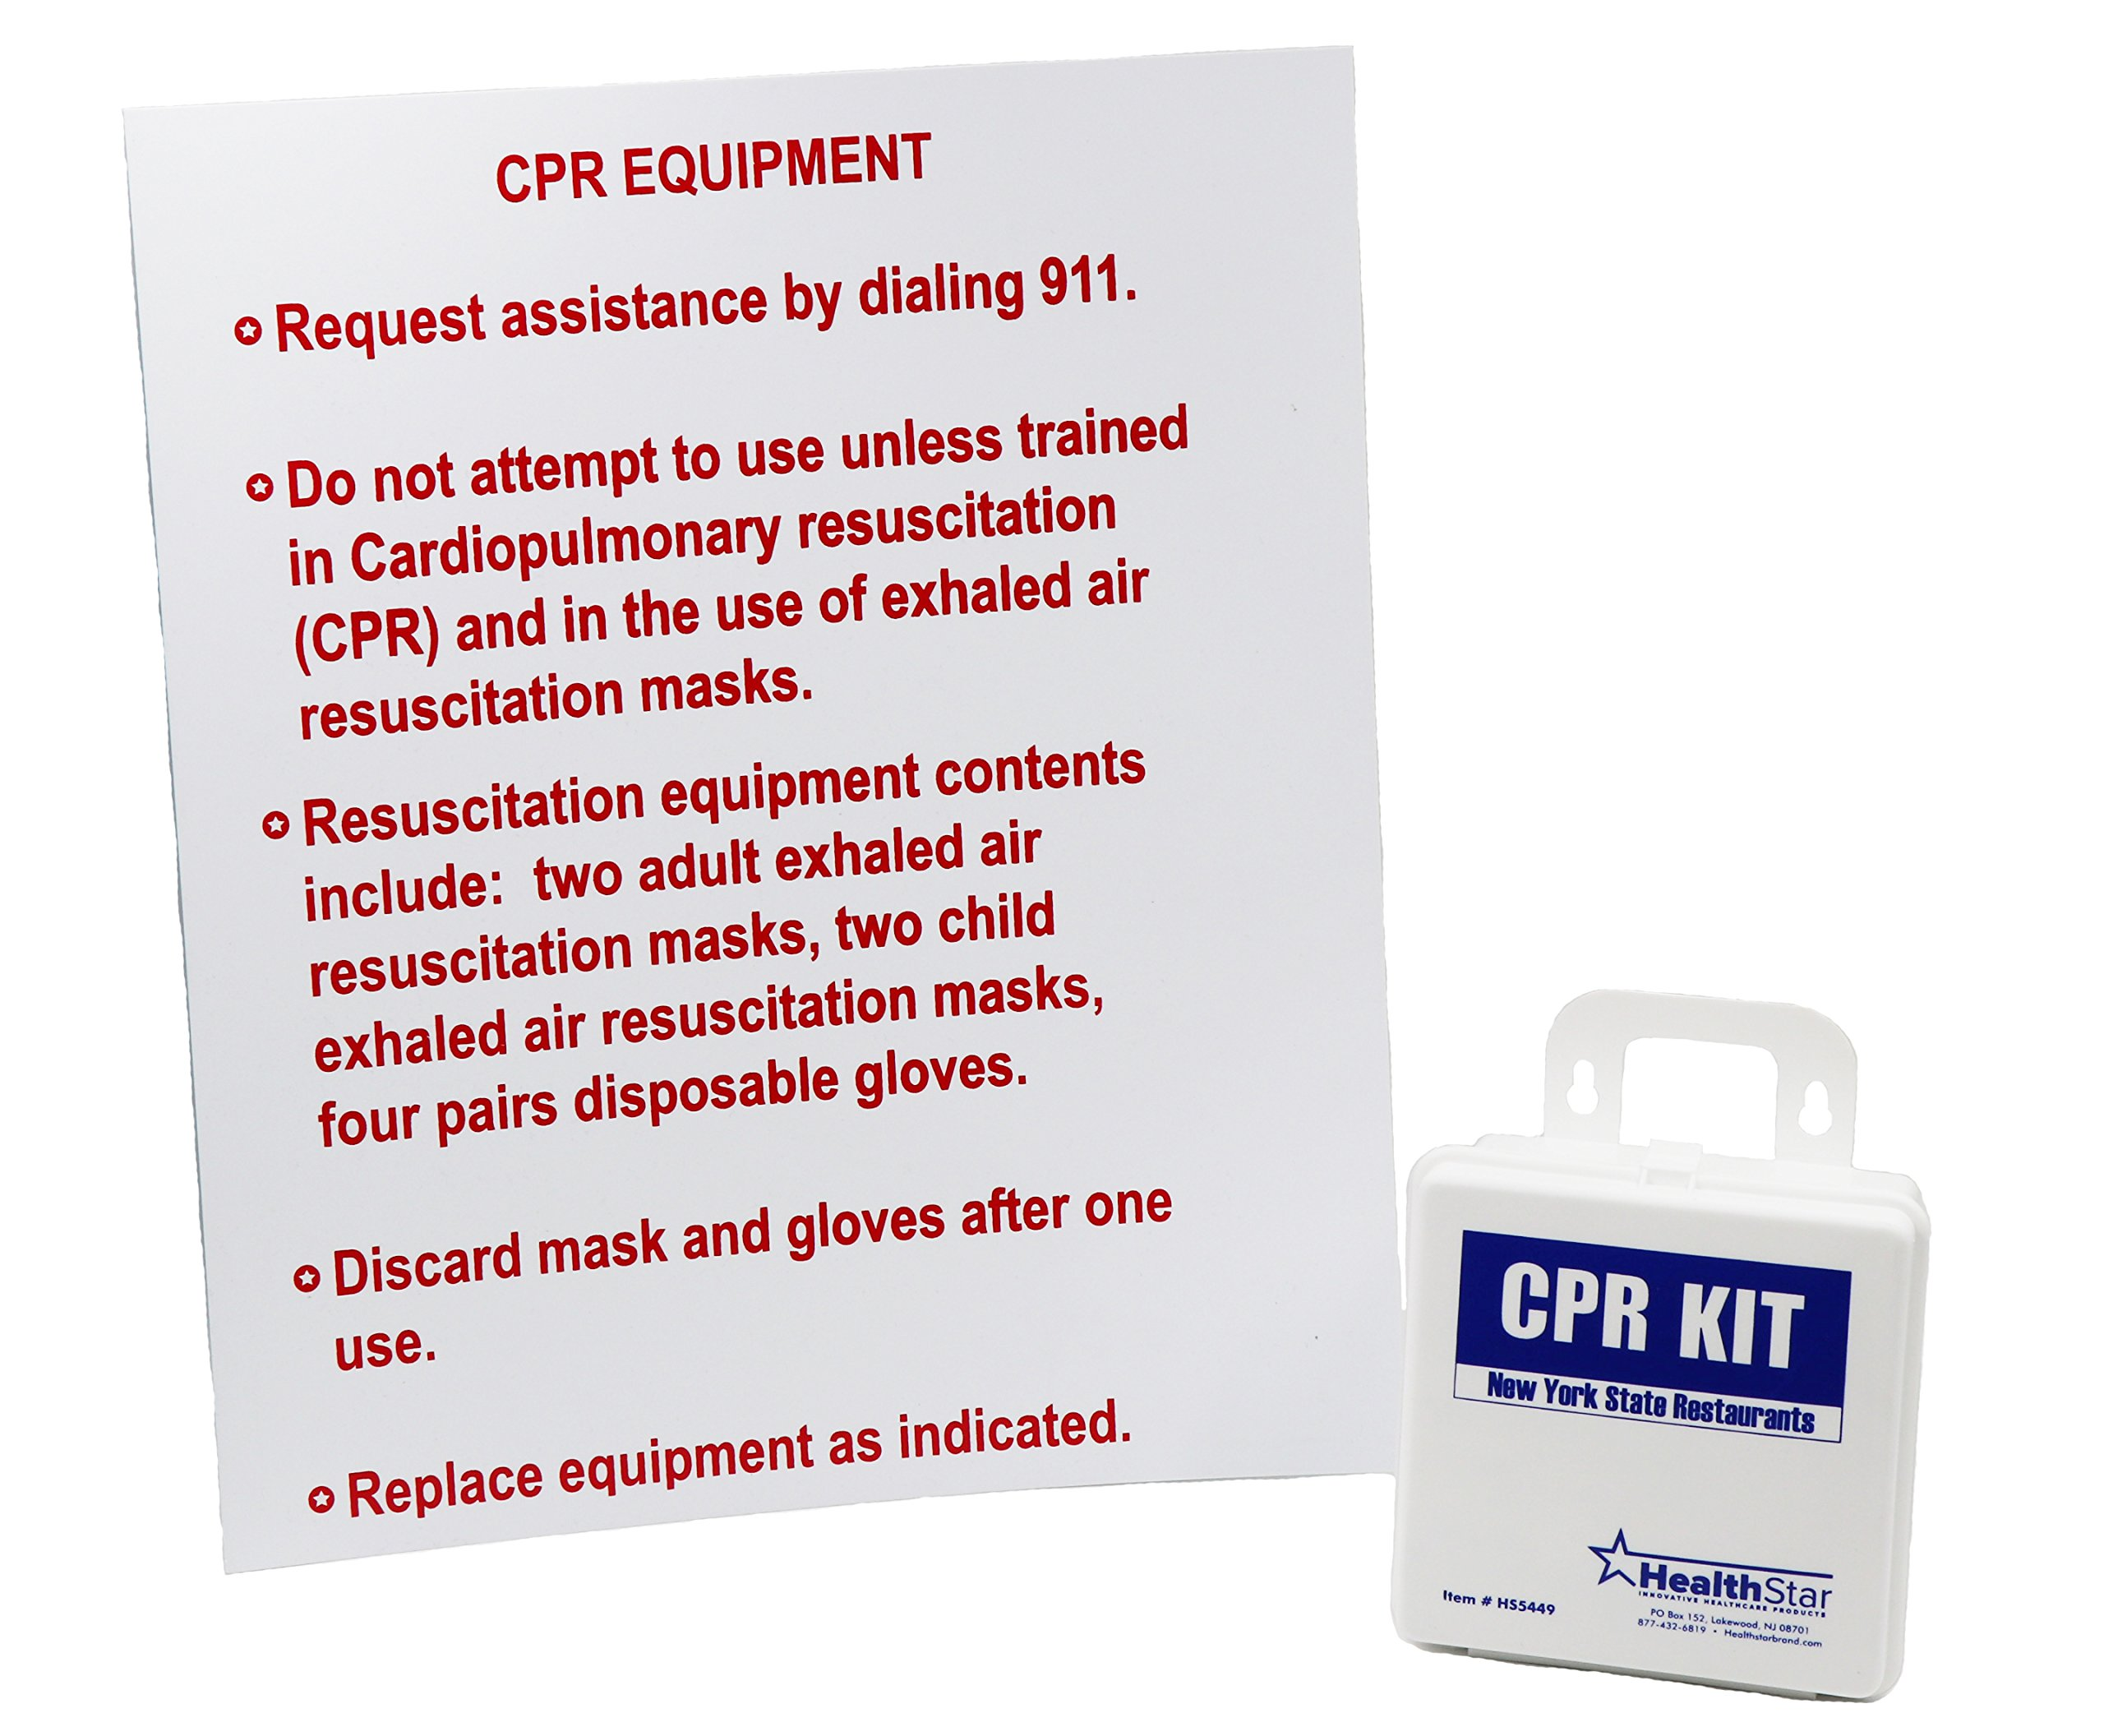 CPR Kit New York State Restaurants With Sign by HealthStar